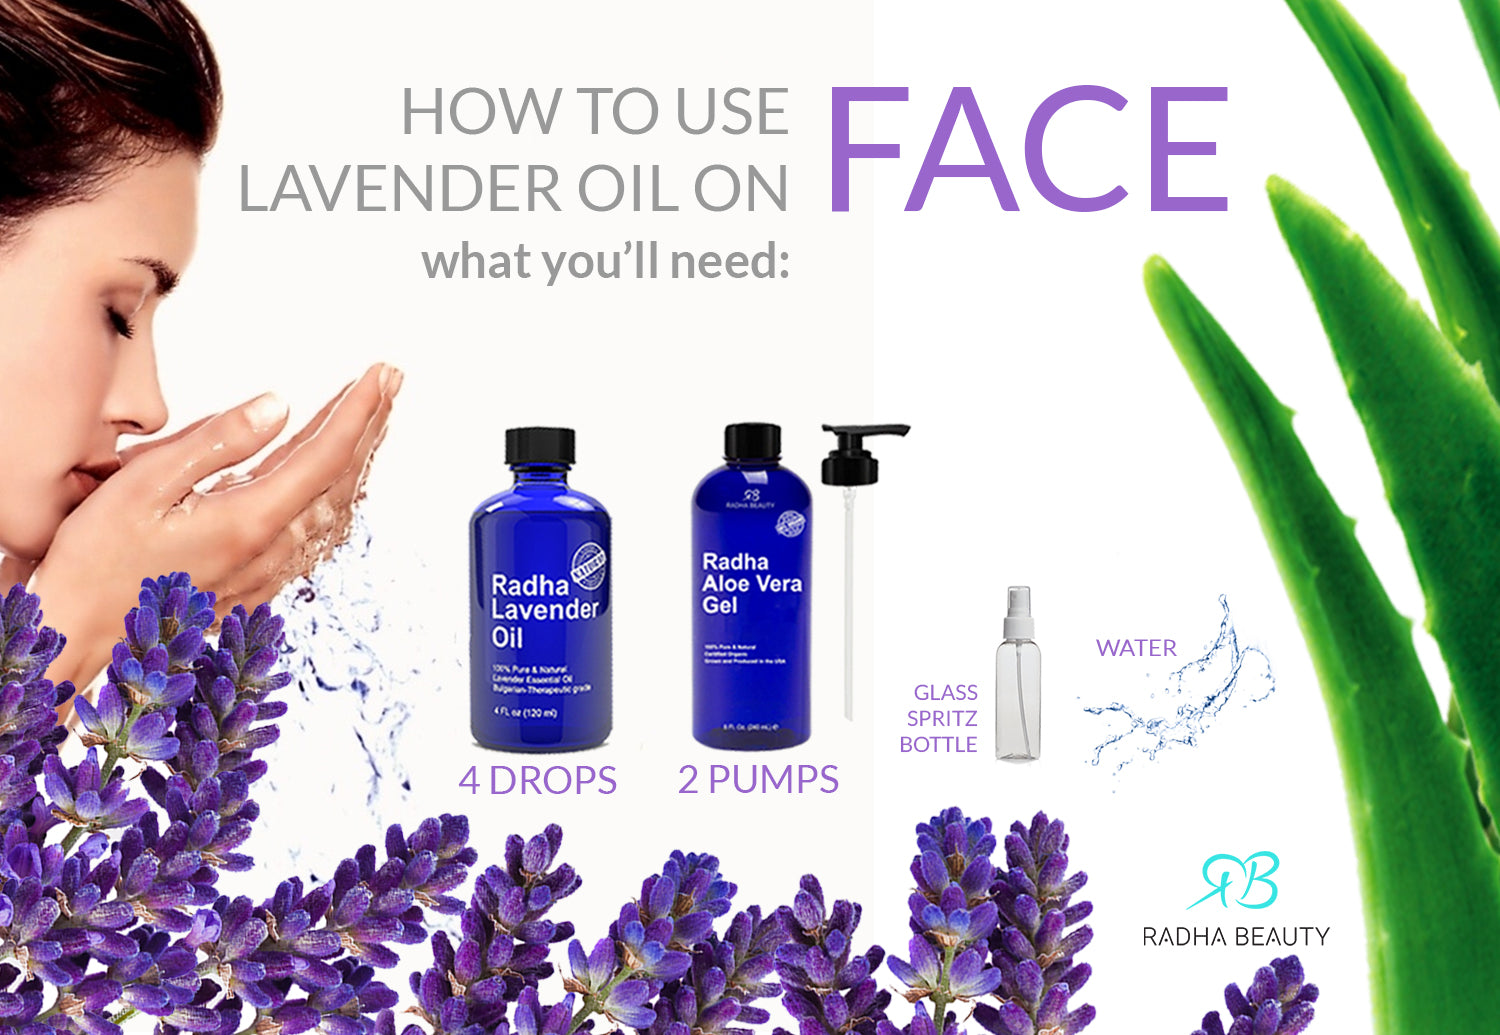 Discussion on this topic: 4 Ways to Use Lavender, 4-ways-to-use-lavender/